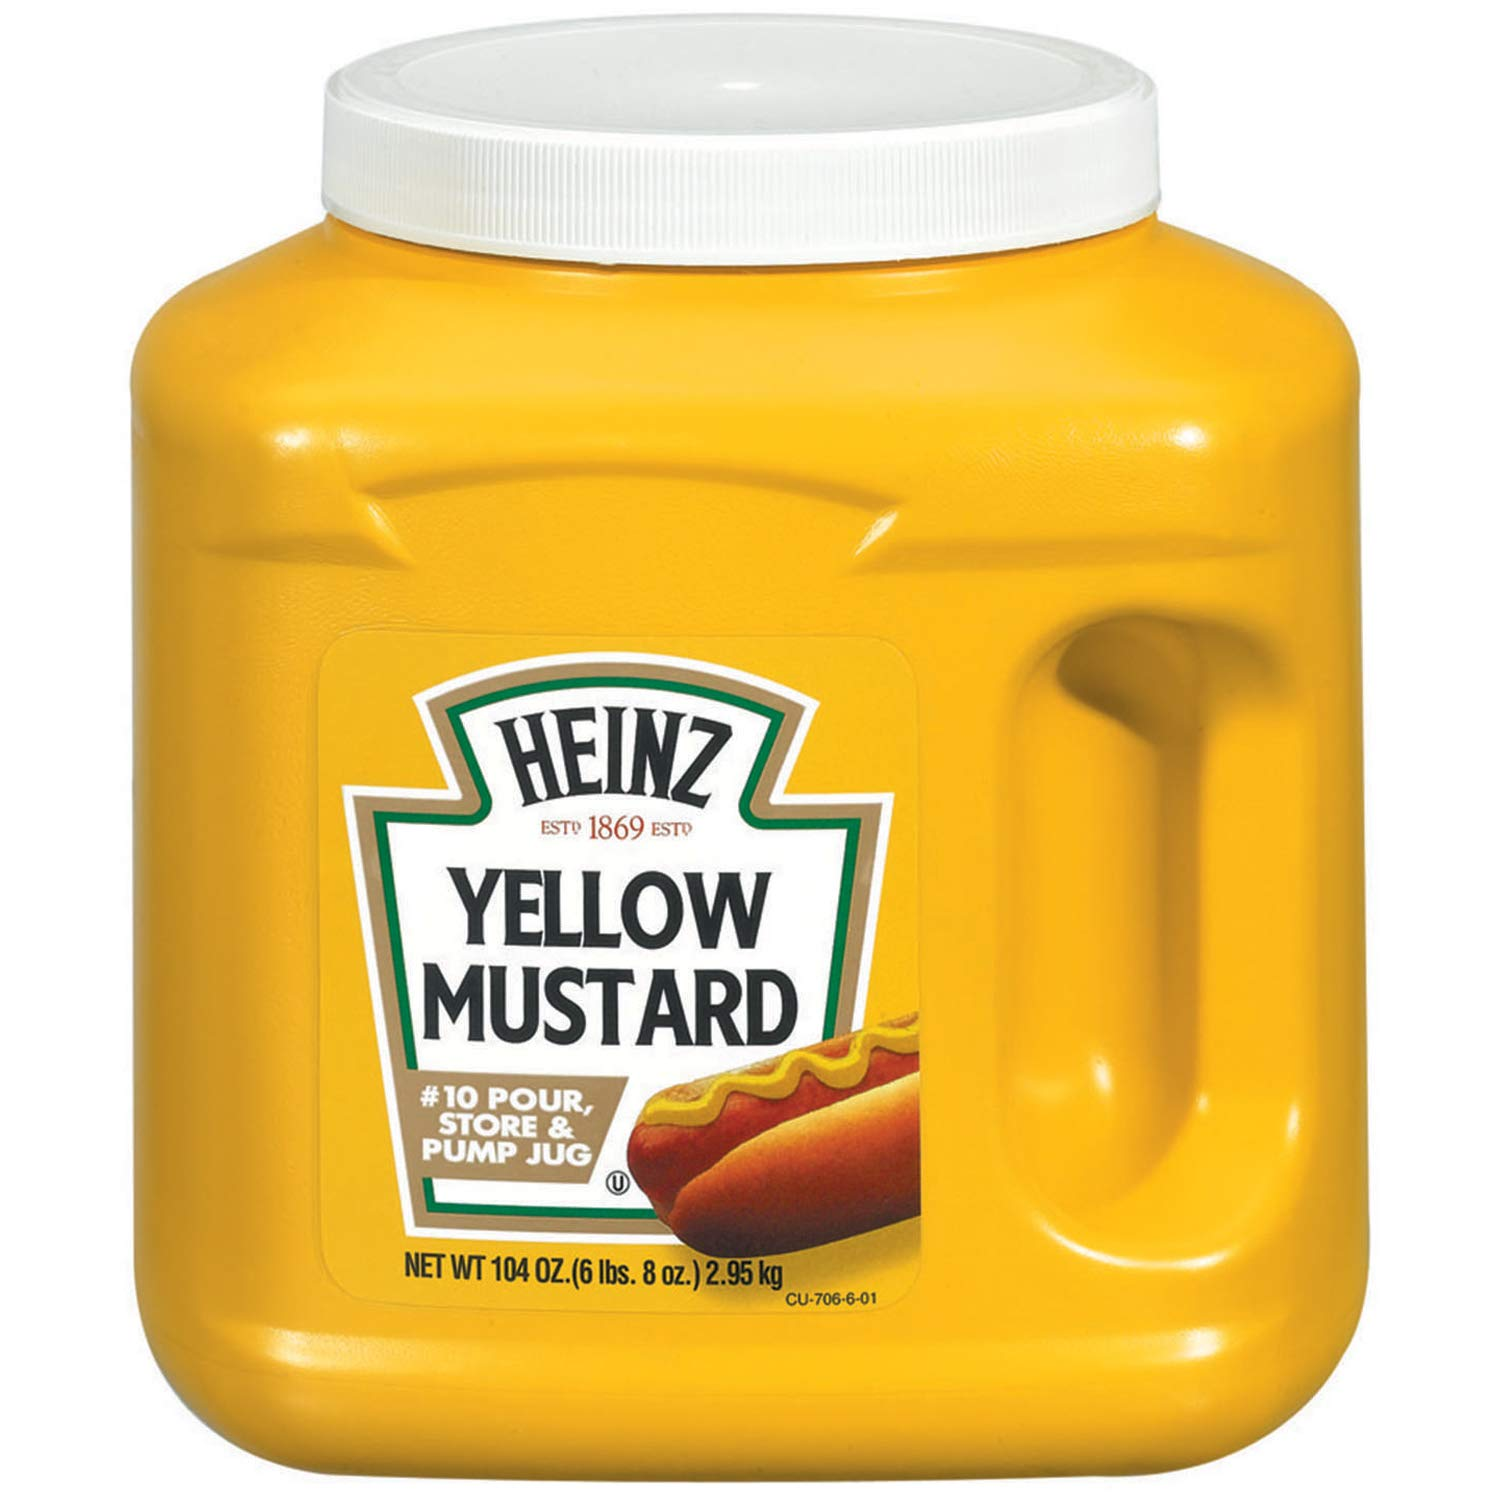 Heinz Bulk Yellow Mustard Jug (104 oz Containers, Pack of 6)